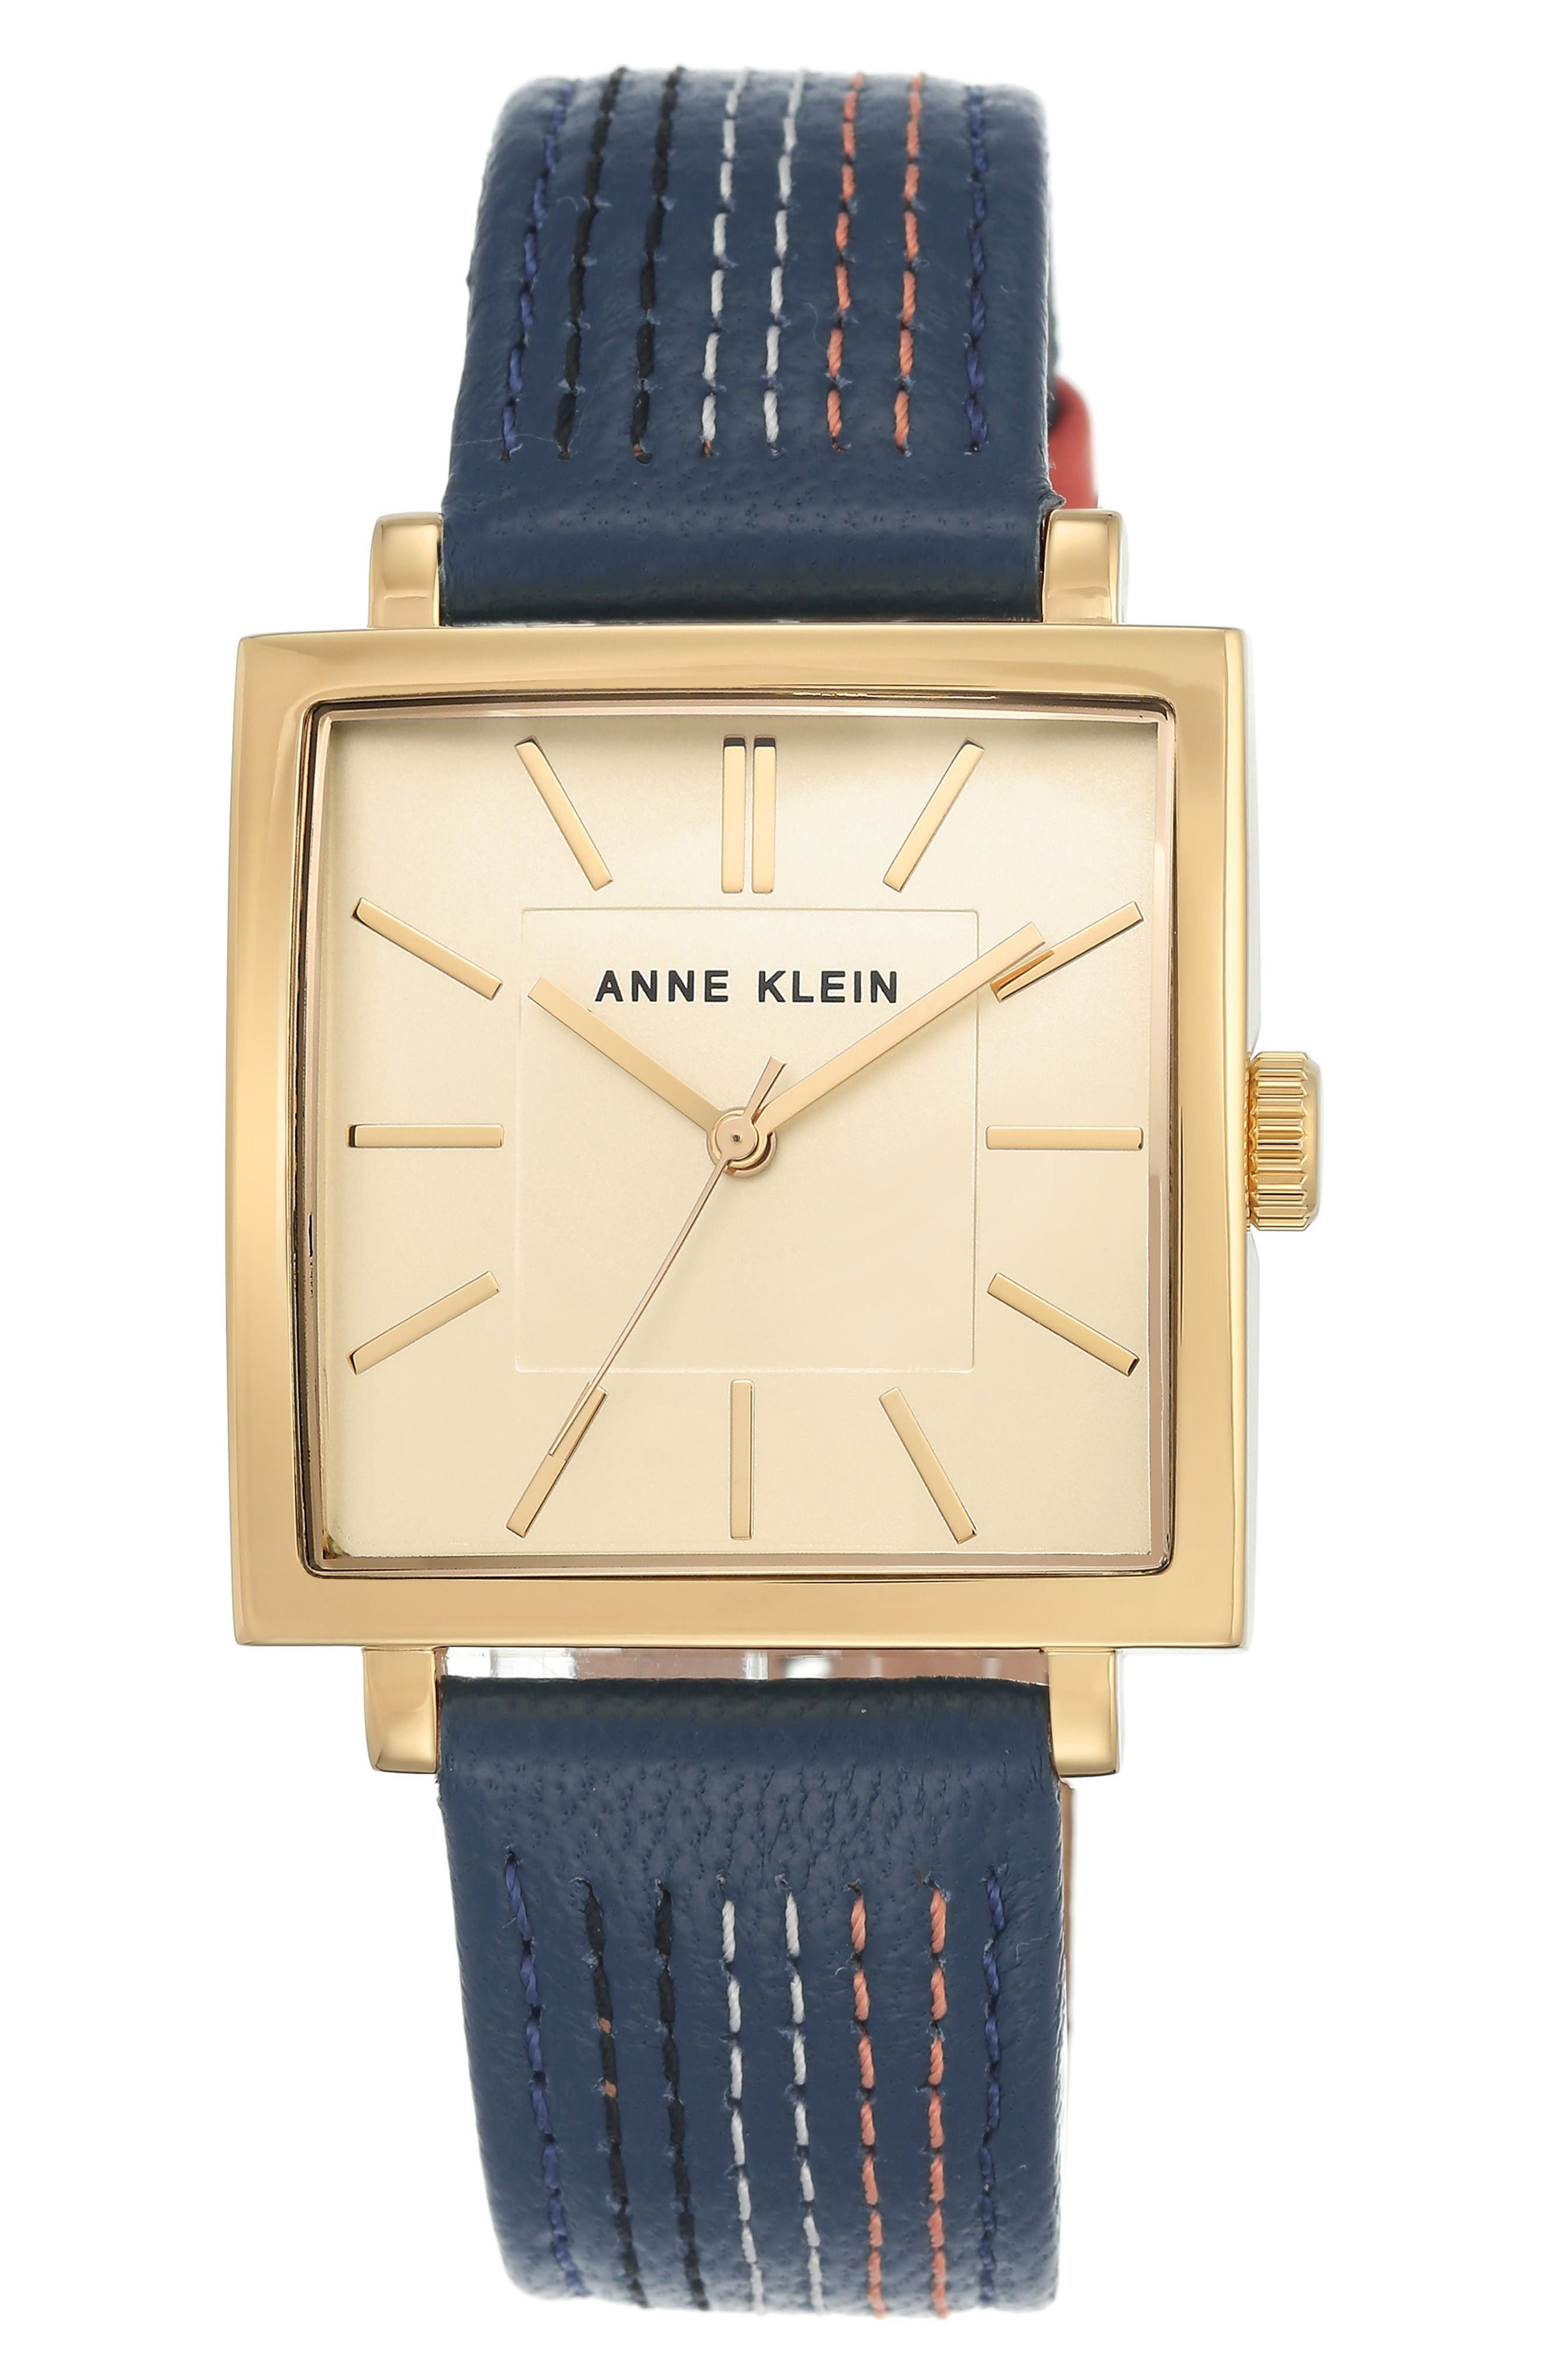 Anne Klein Square Leather Strap Watch, 42mm x 34mm